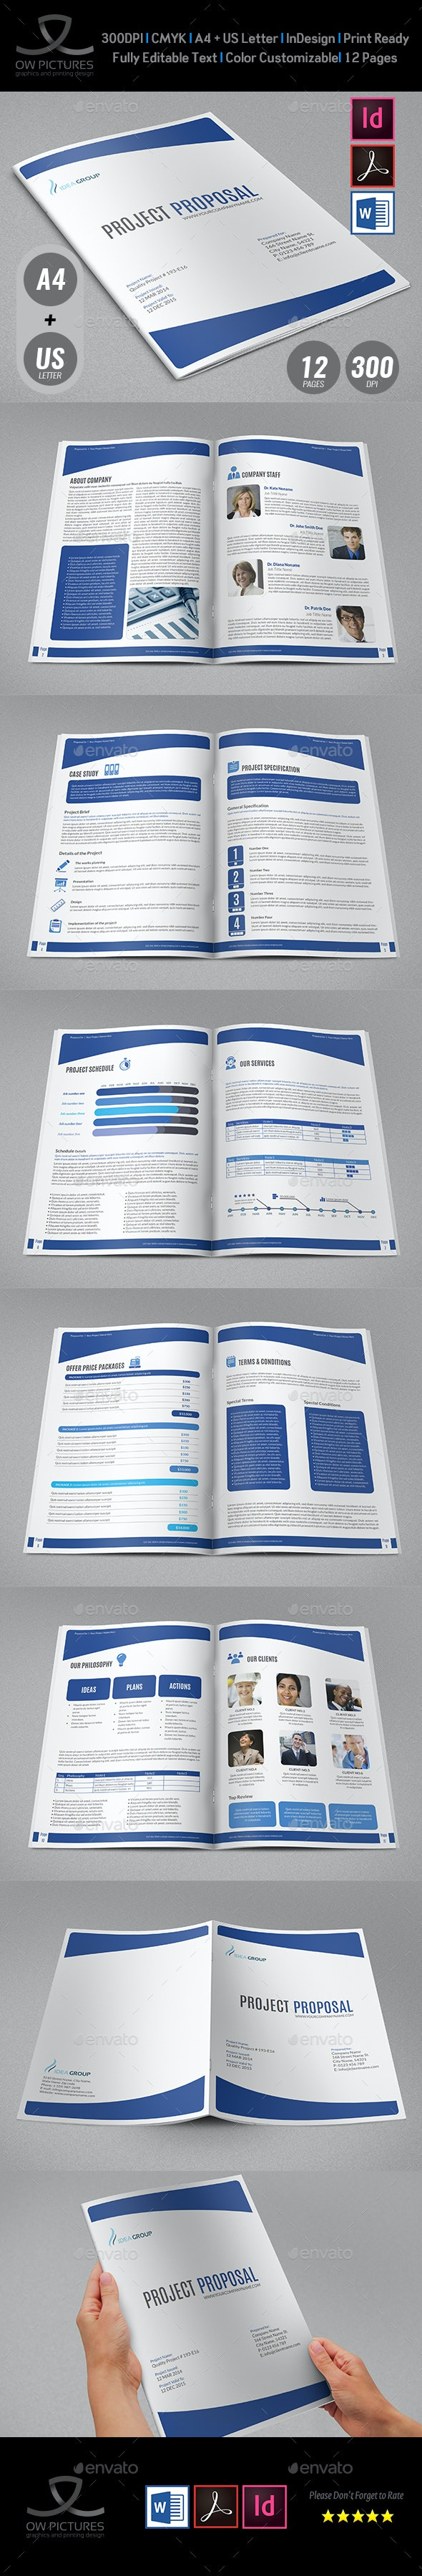 Company Proposal Template - 12 Pages - Proposals & Invoices Stationery